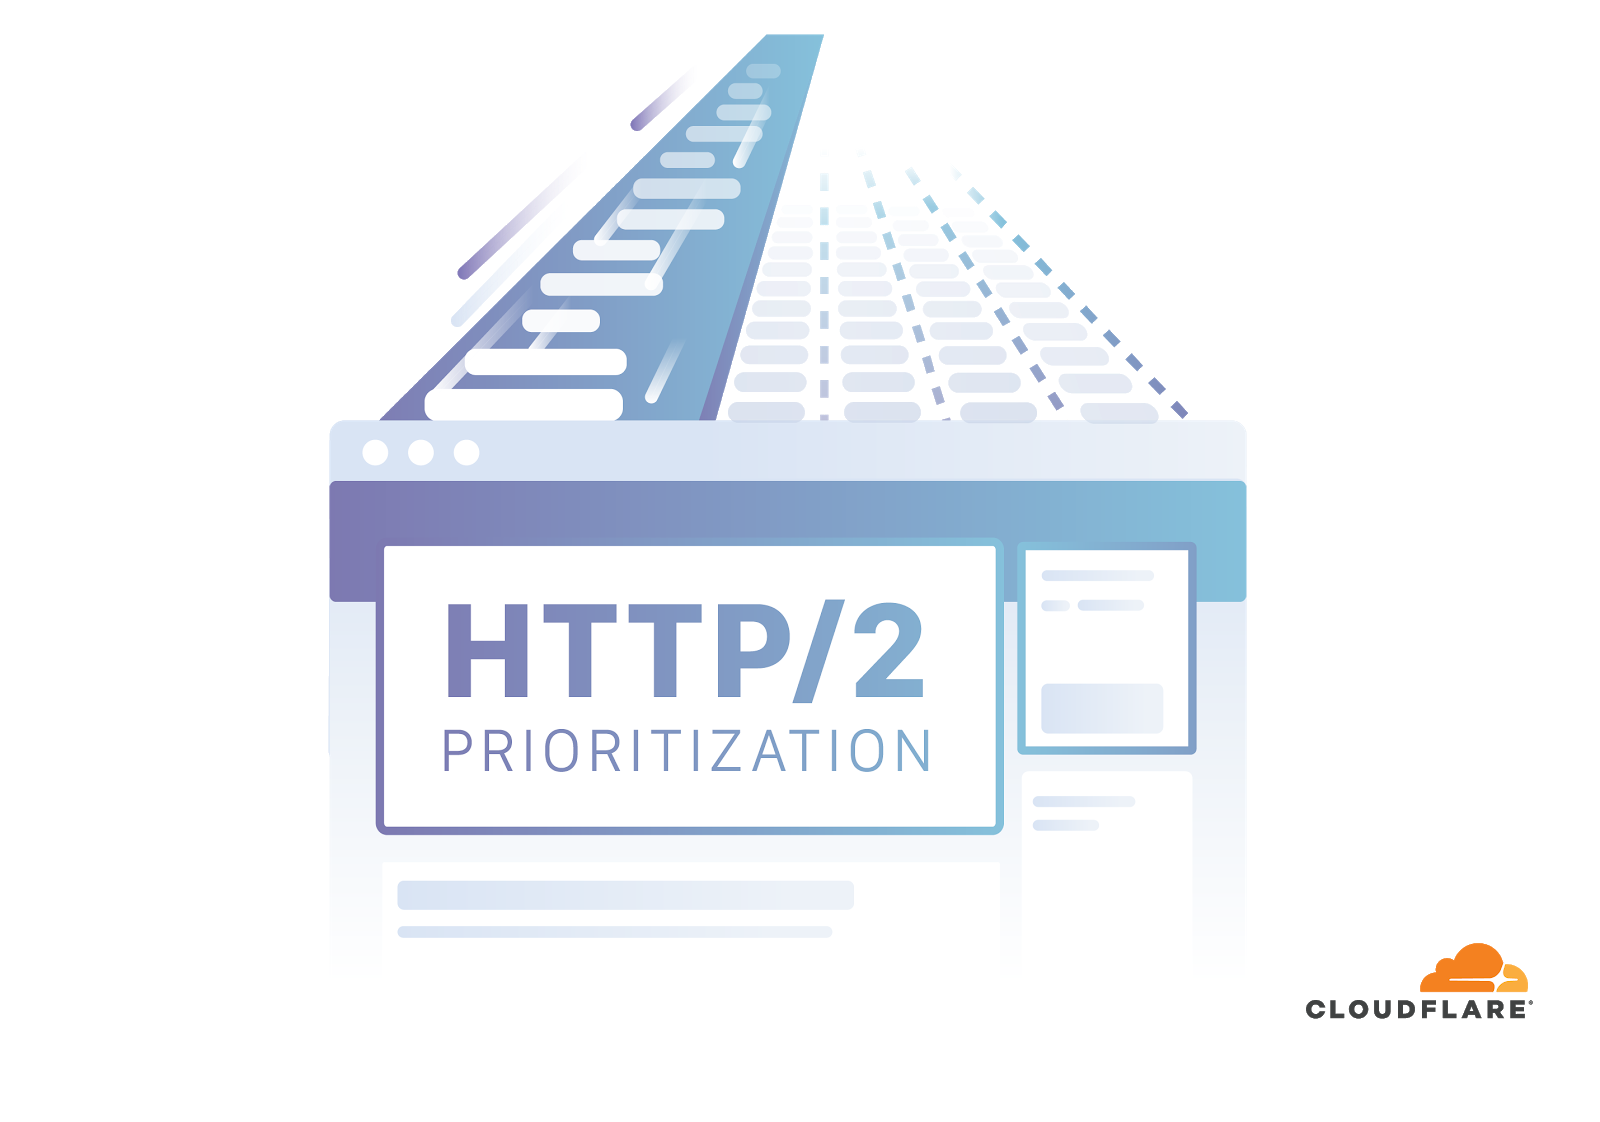 Better HTTP/2 Prioritization for a Faster Web